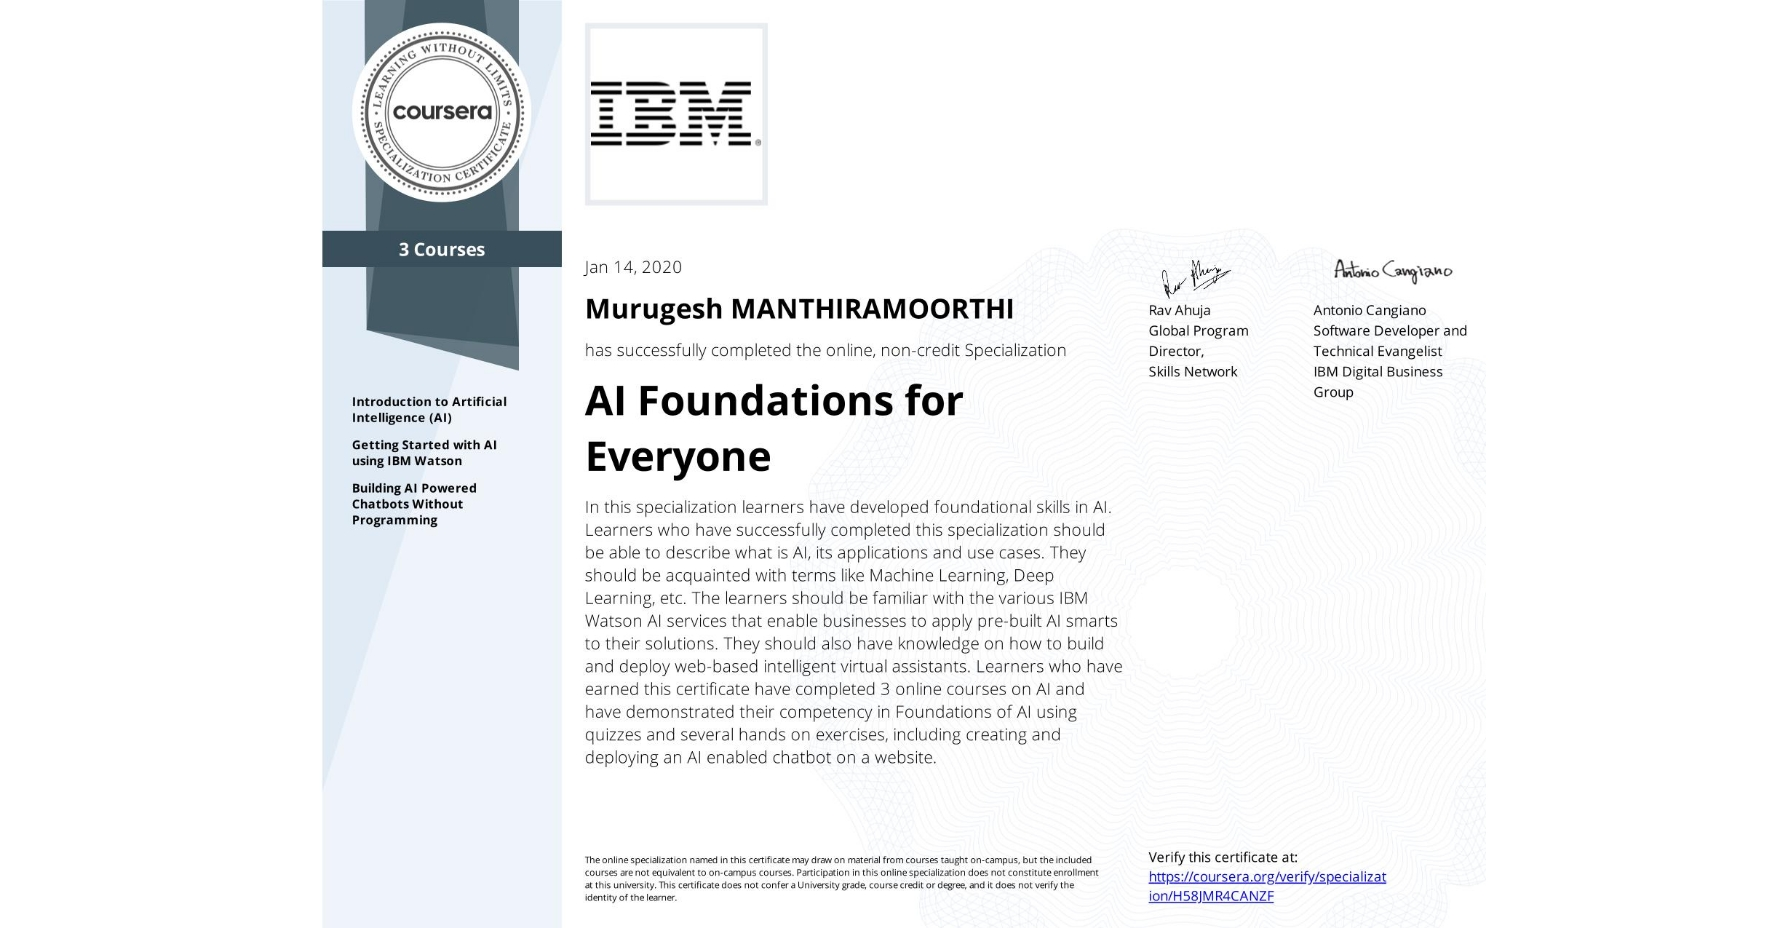 View certificate for Murugesh Manthiramoorthi, AI Foundations for Everyone, offered through Coursera. In this specialization learners have developed foundational skills in AI.  Learners who have successfully completed this specialization should be able to describe what is AI, its applications and use cases. They should be acquainted with terms like Machine Learning, Deep Learning, etc. The learners should be familiar with the various IBM Watson AI services that enable businesses to apply pre-built AI smarts to their solutions. They should also have knowledge on how to build and deploy web-based intelligent virtual assistants. Learners who have earned this certificate have completed 3 online courses on AI and have demonstrated their competency in Foundations of AI using quizzes and several hands on exercises, including creating and deploying an AI enabled chatbot on a website.